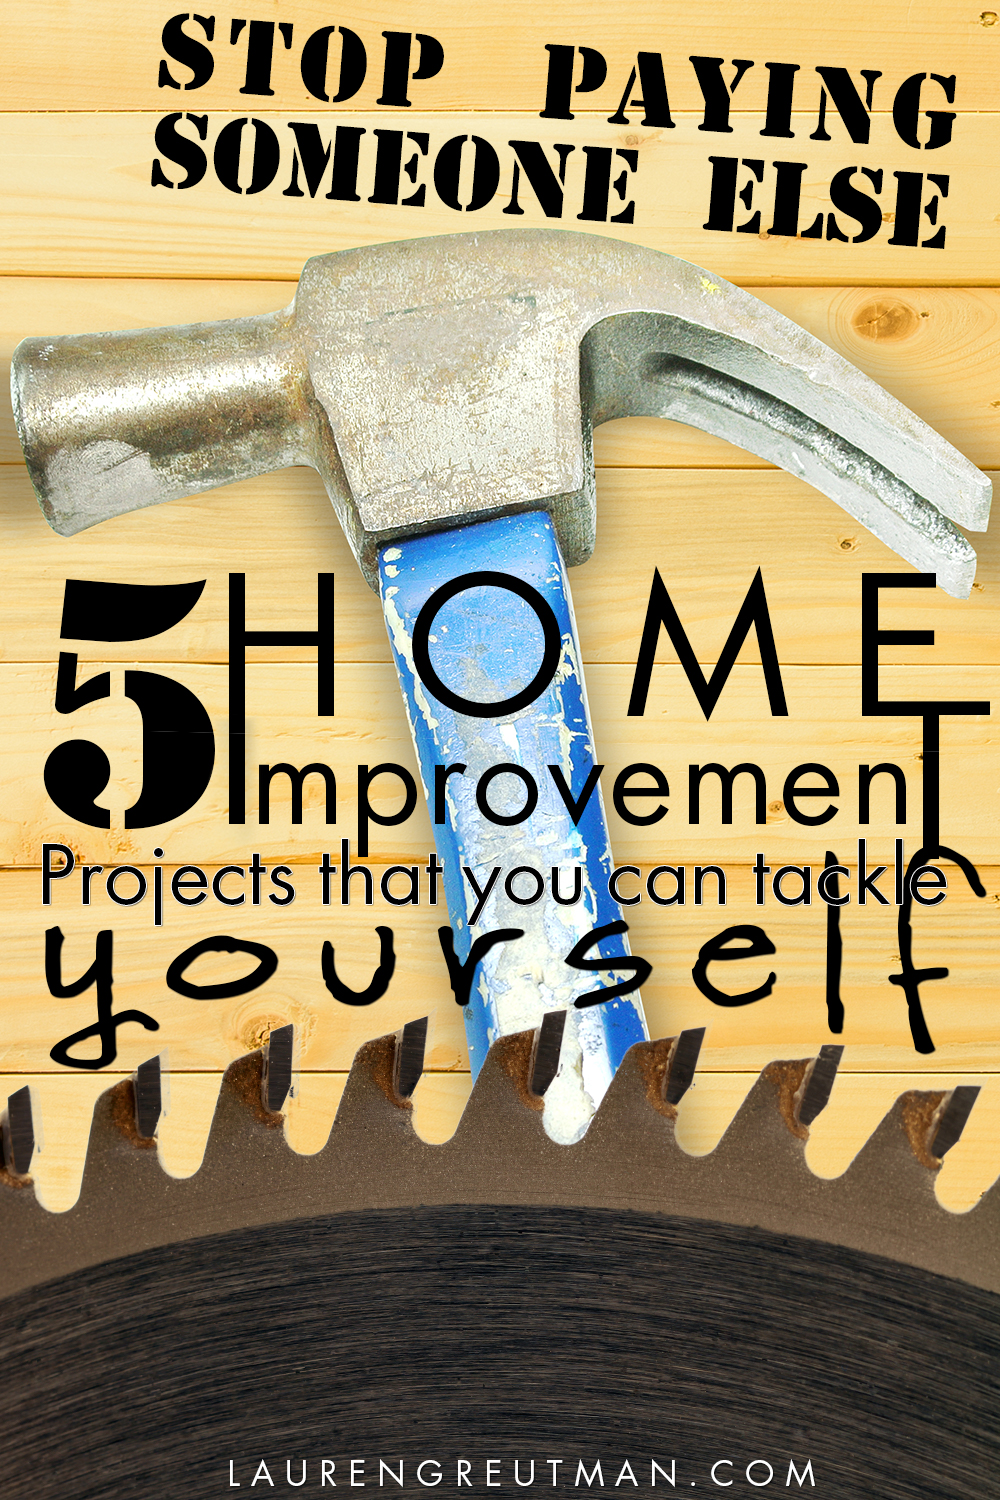 Stop paying someone else! Here are 5 Home Improvement projects that you can tackle yourself!